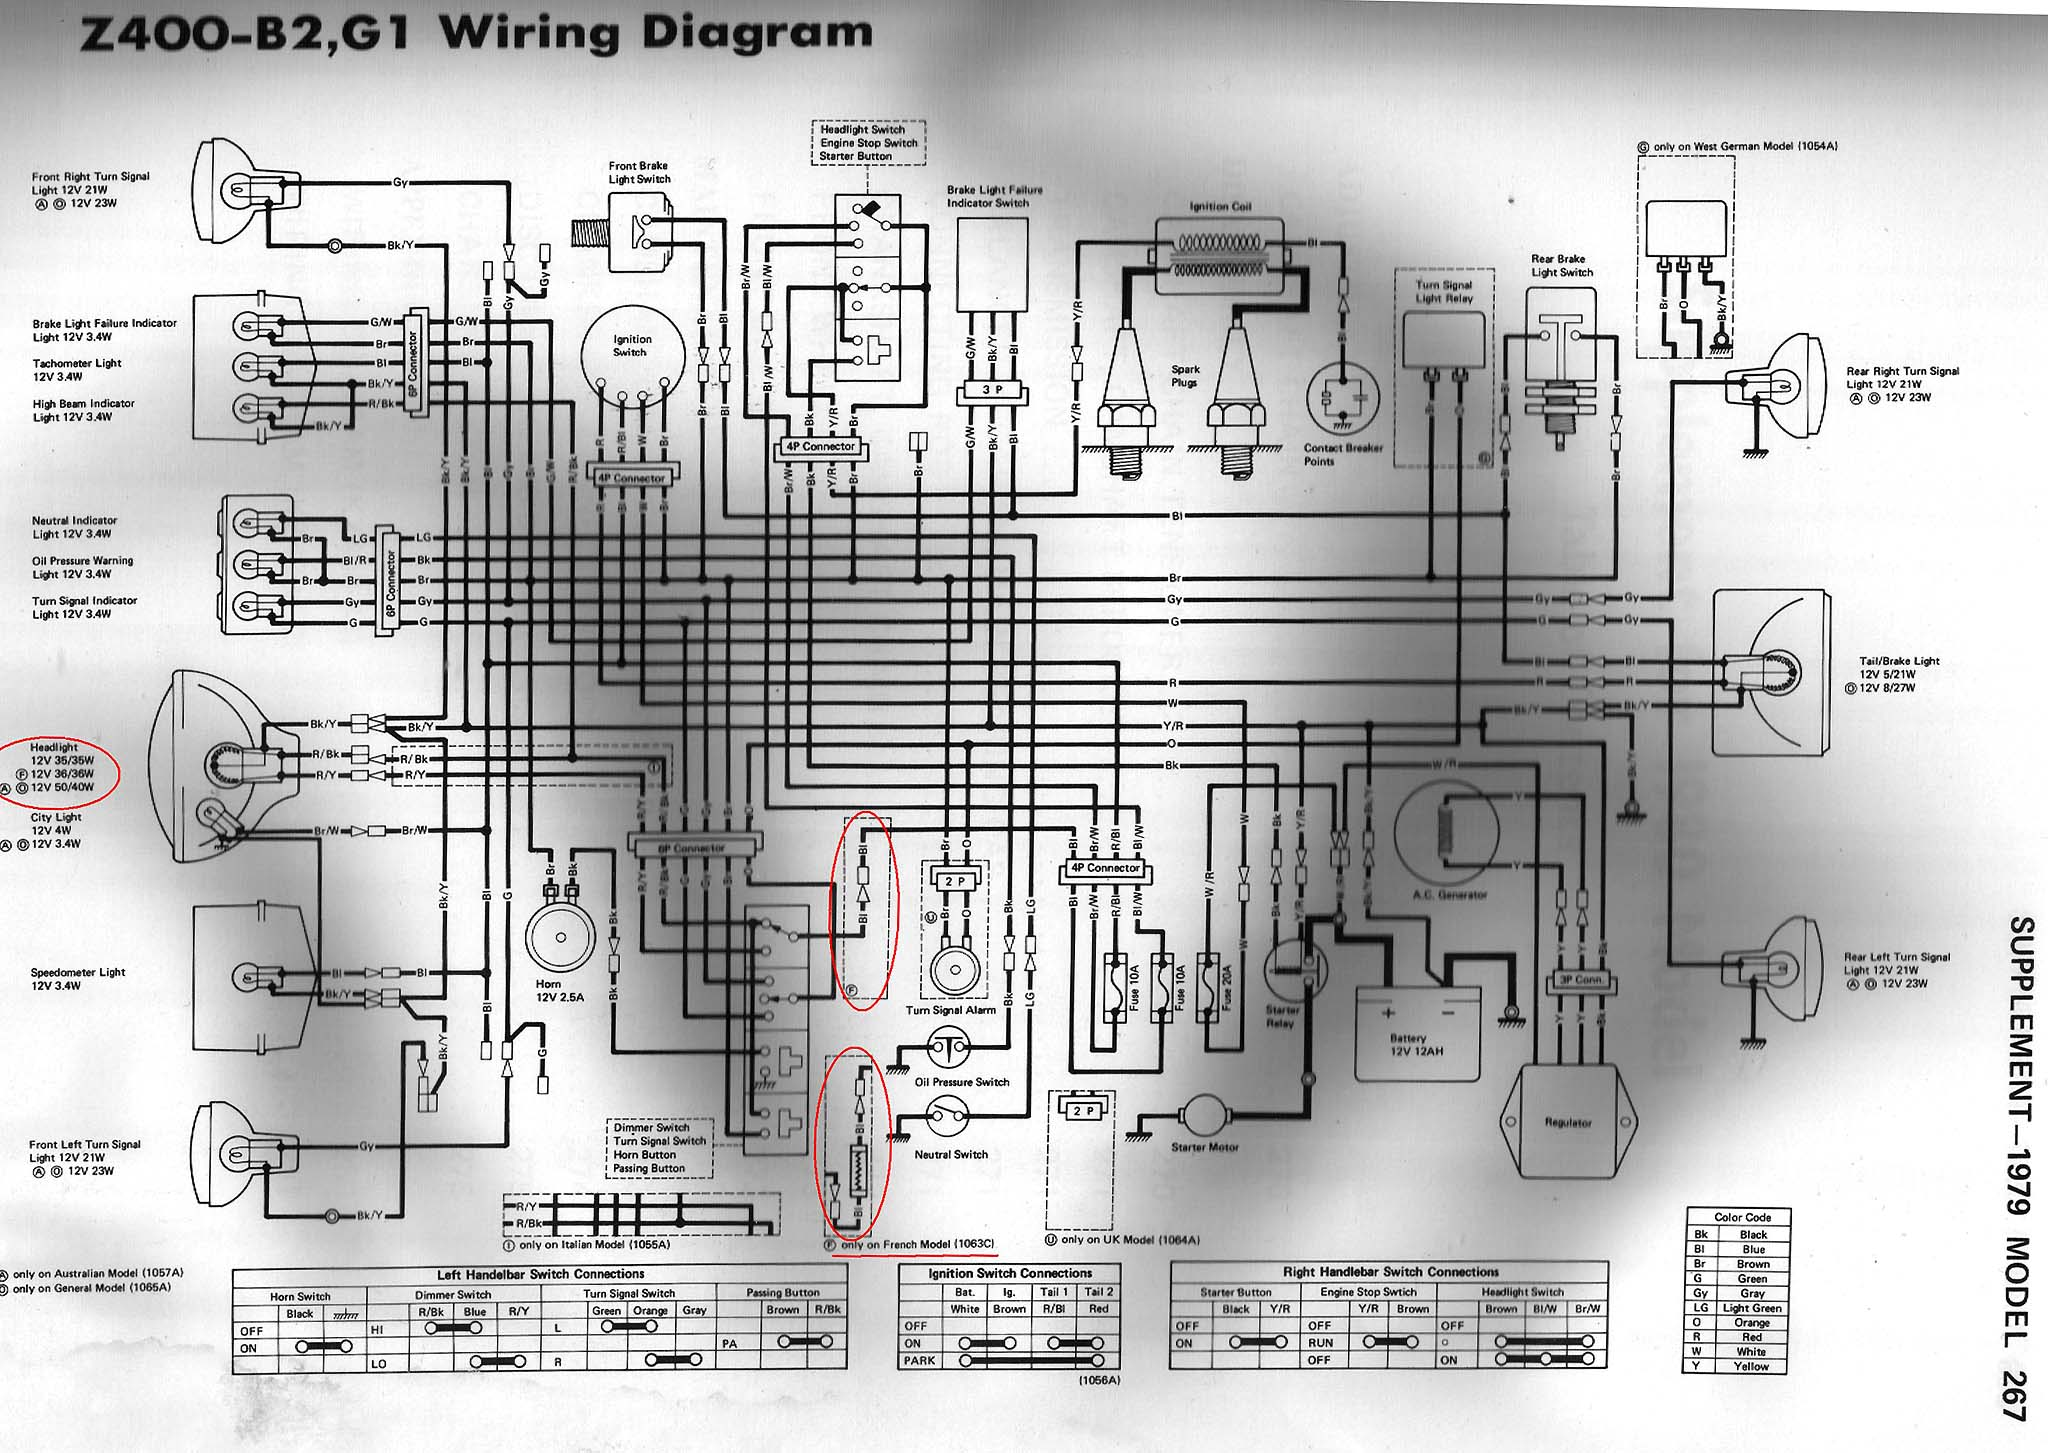 System Wiring Diagram On 1980 Ford Truck Ignition Wiring Diagram